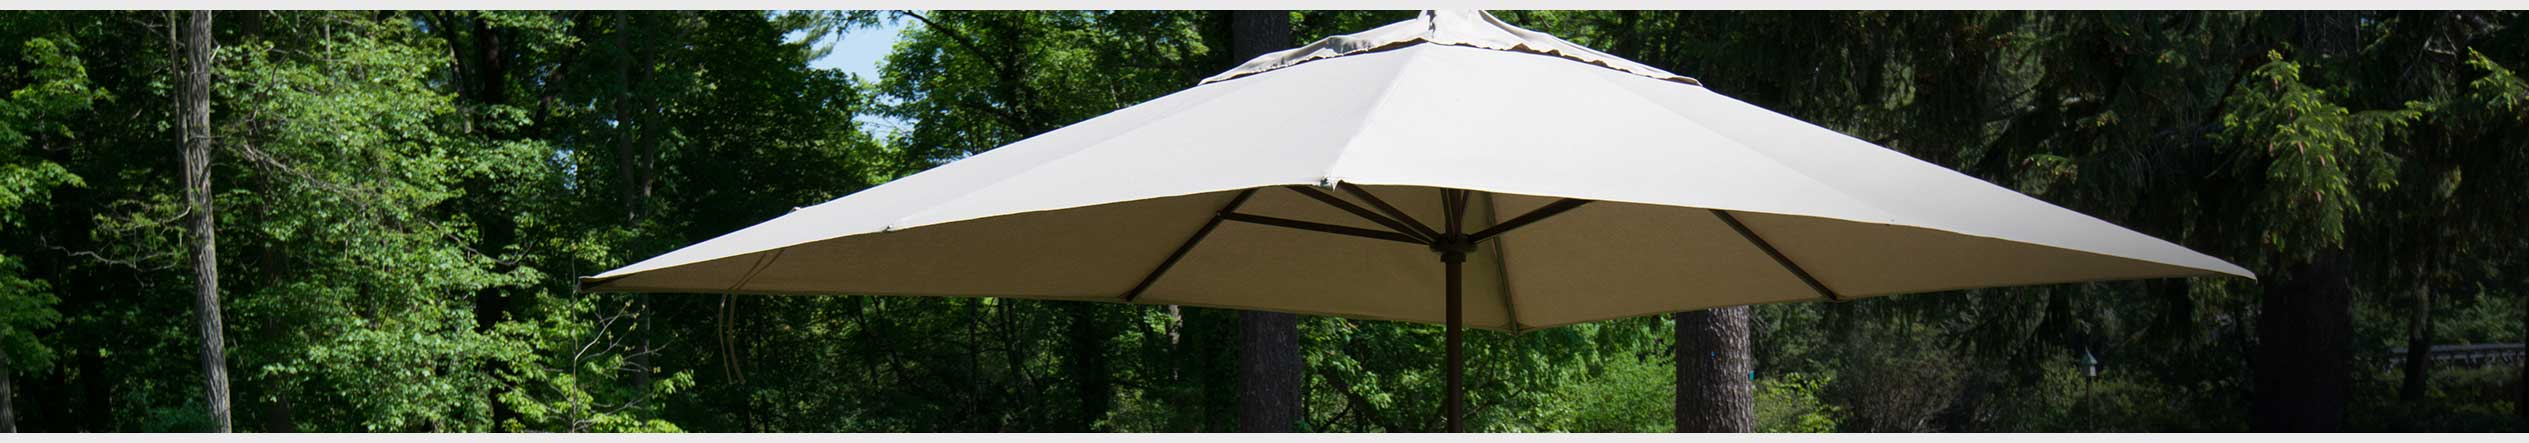 faee896f0e Outdoor and Patio Umbrellas at Jordan's Furniture in CT, MA, NH and RI